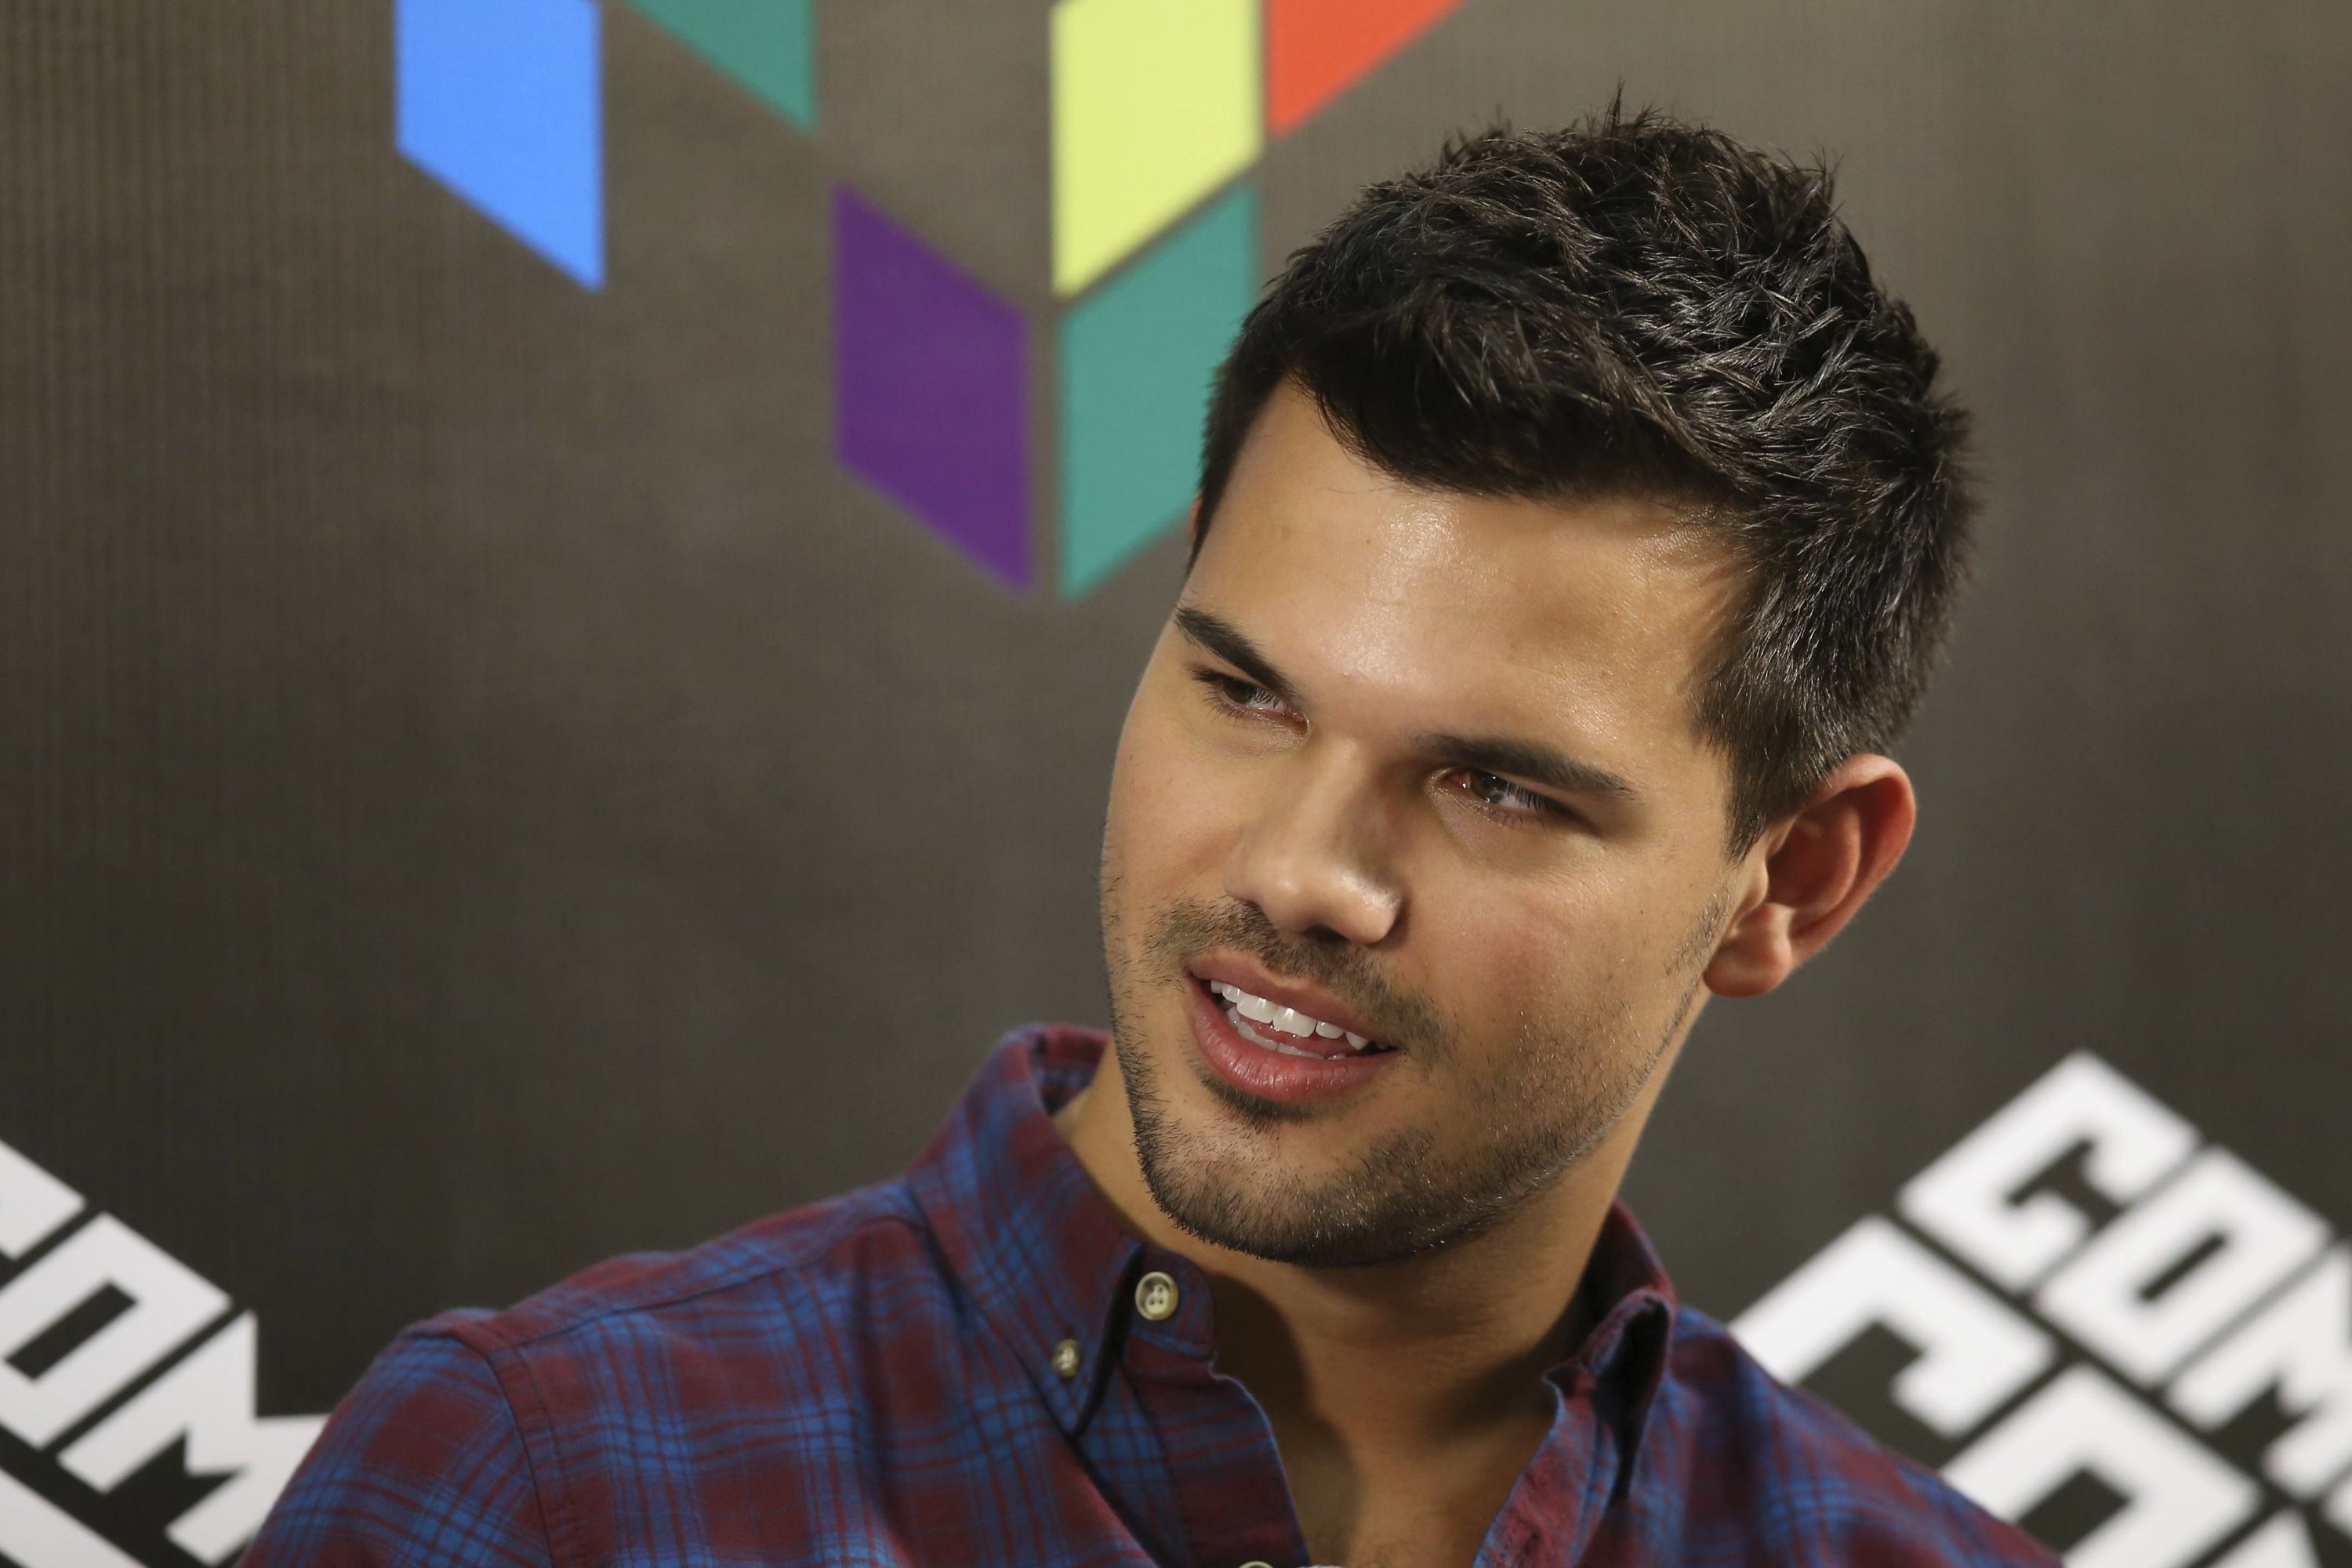 We've been pronouncing Taylor Lautner's name wrong this whole time